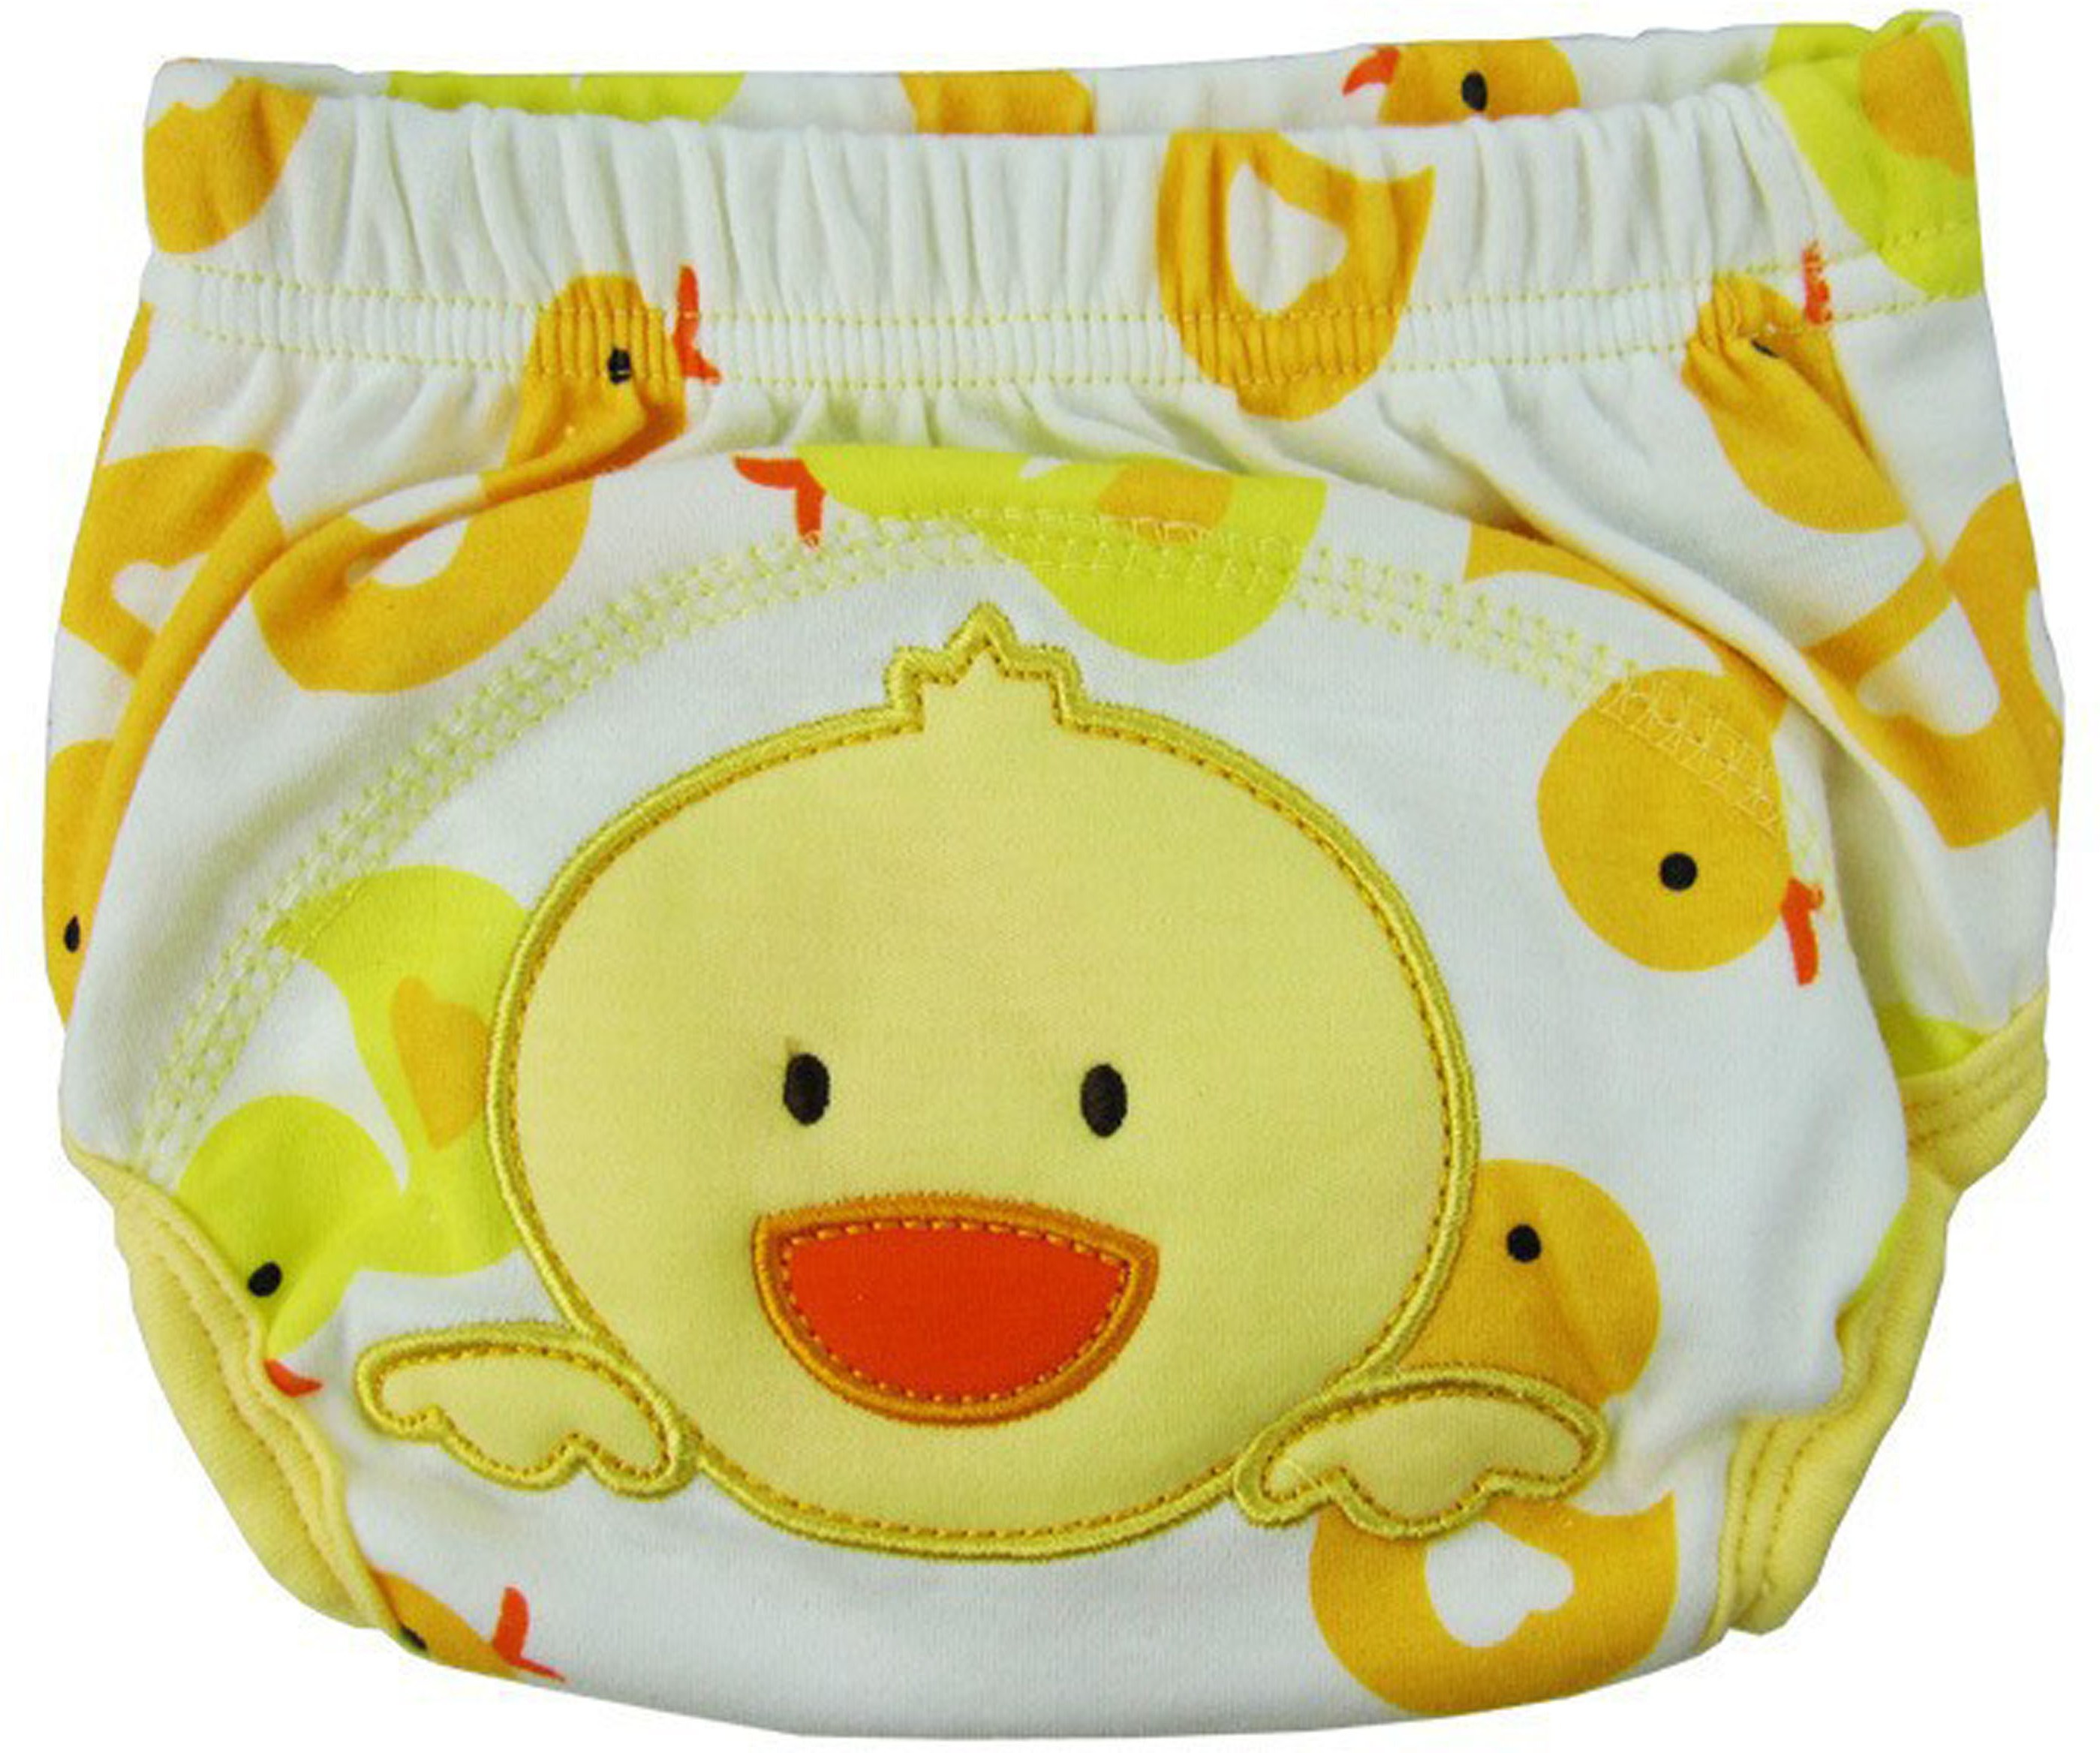 Ole Baby Soft Comfortable Reusable Cotton Pull on Style Pants (Age:0-1 Years) - S(1 Pieces)